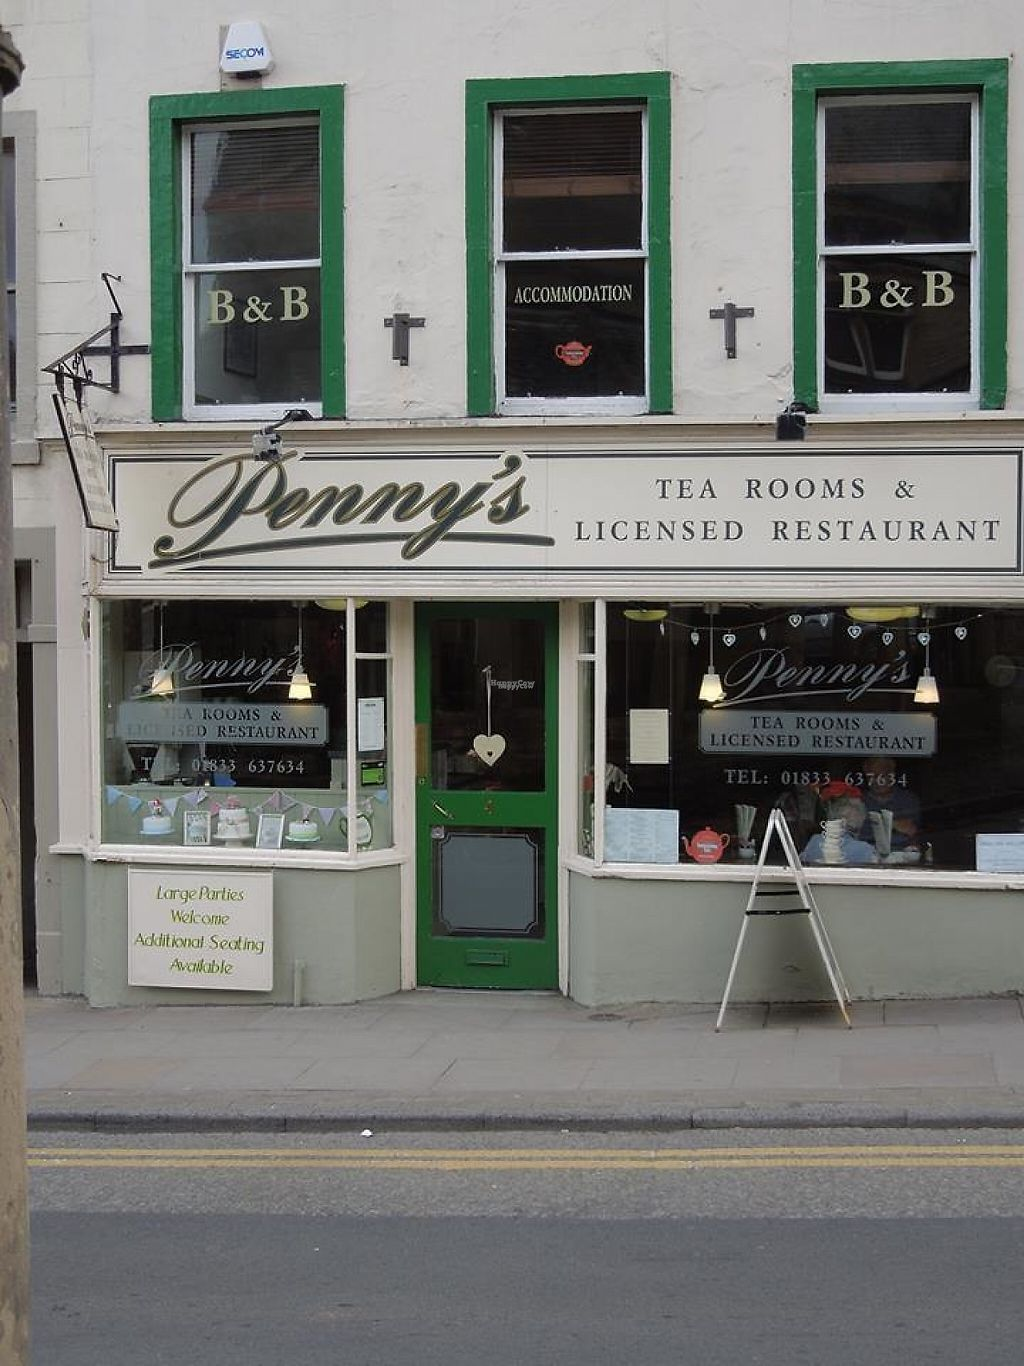 """Photo of Penny's Tearooms  by <a href=""""/members/profile/community"""">community</a> <br/>Penny's Tearooms <br/> November 22, 2016  - <a href='/contact/abuse/image/78880/193189'>Report</a>"""